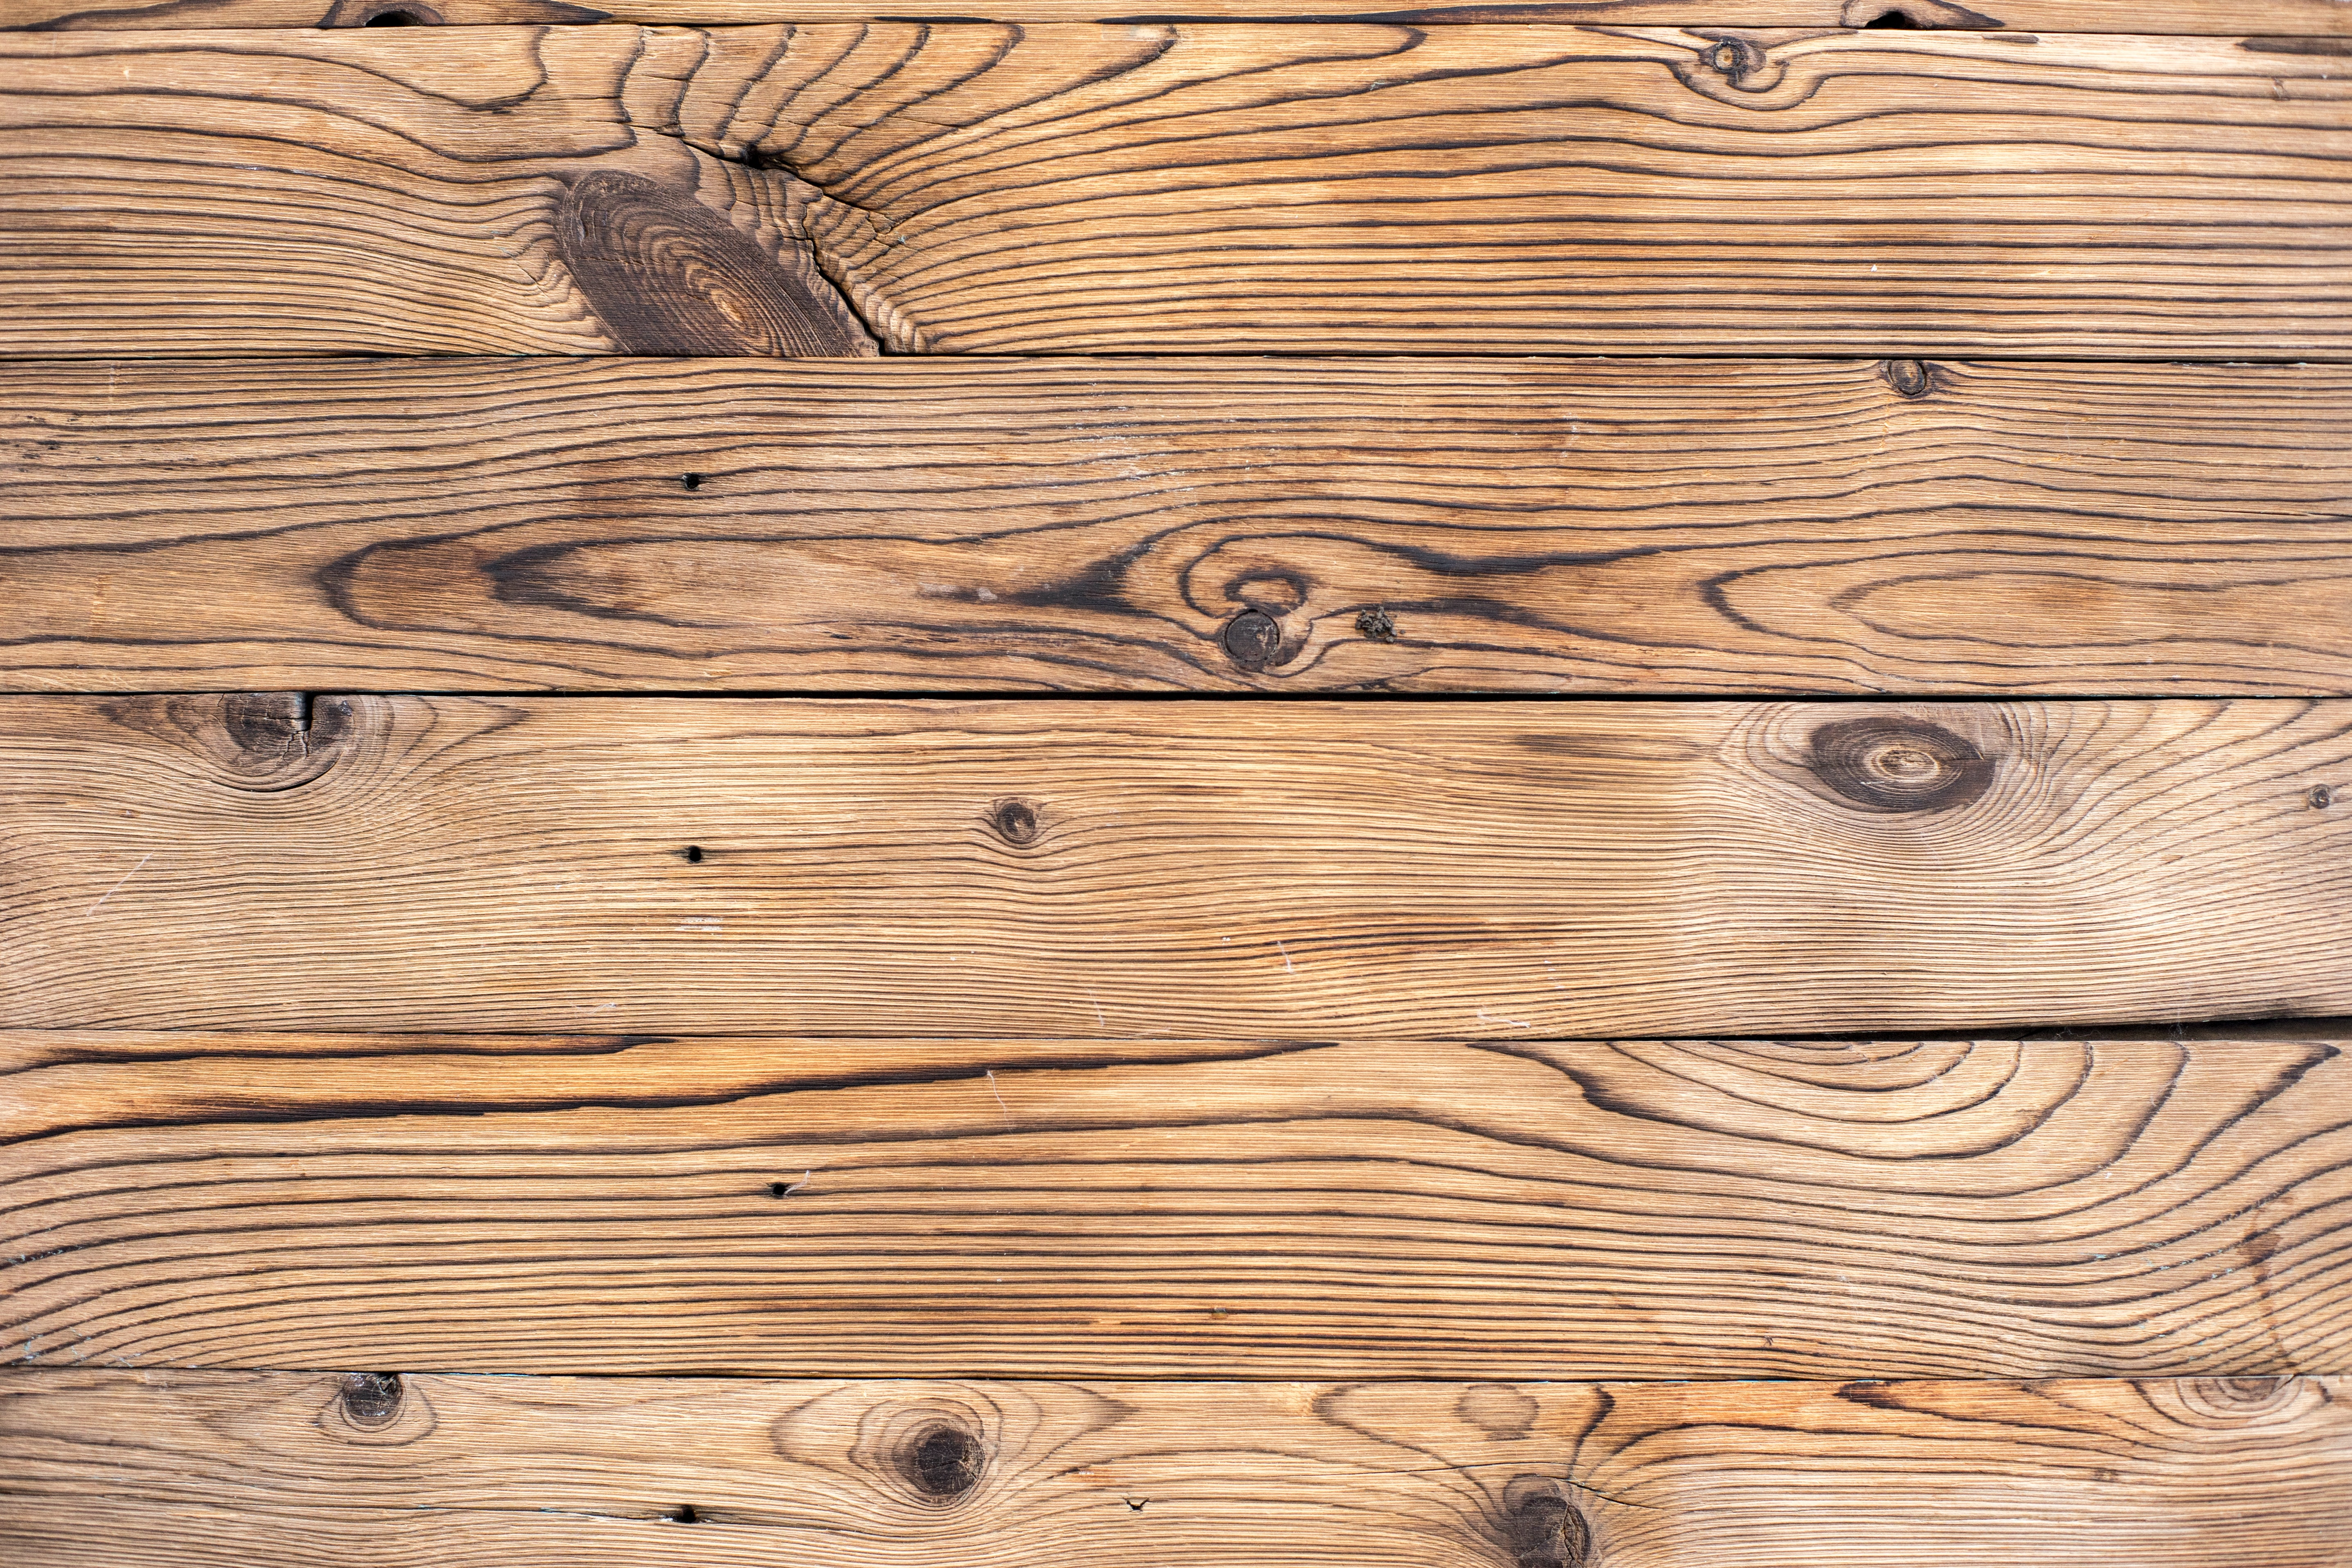 148658 download wallpaper Textures, Texture, Planks, Board, Wood, Wooden, Surface, Lines screensavers and pictures for free